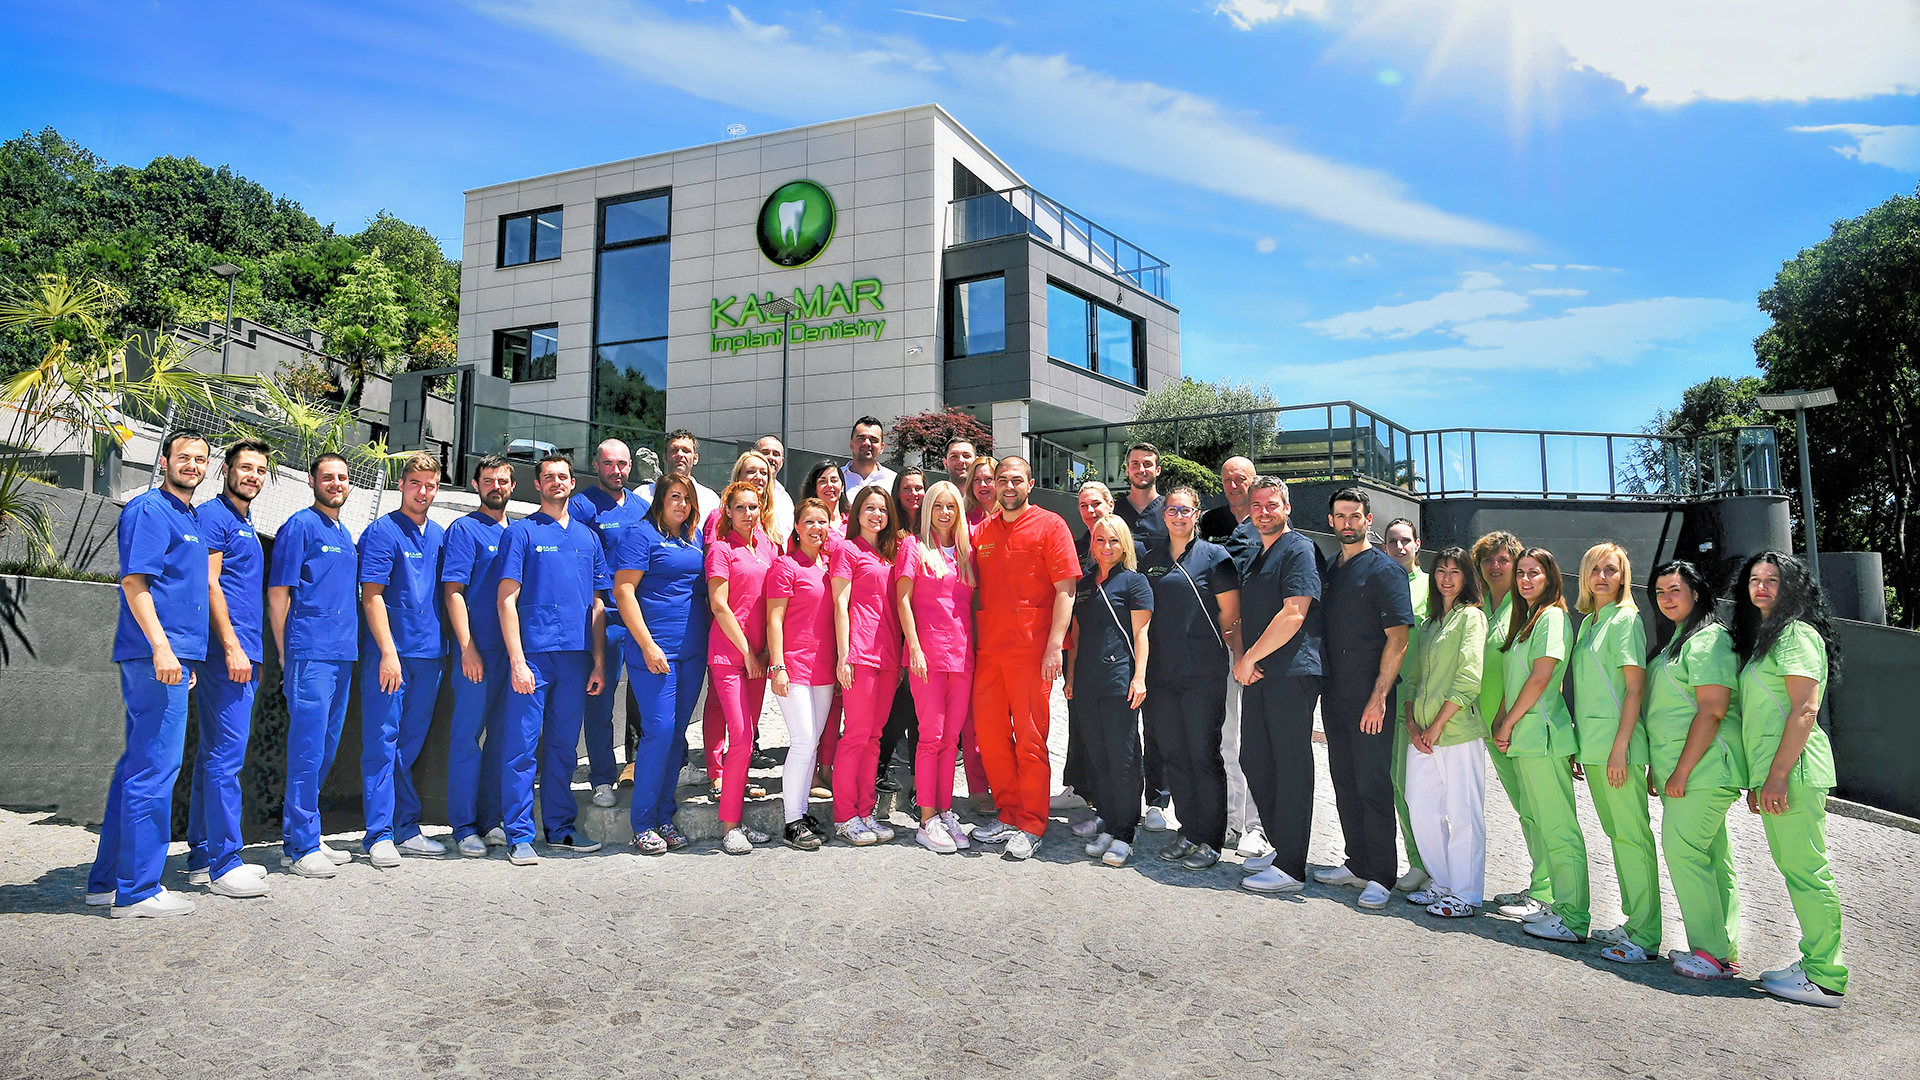 CROATIA: Kalmar Implant Dentistry – GCR™ Internationally Accredited